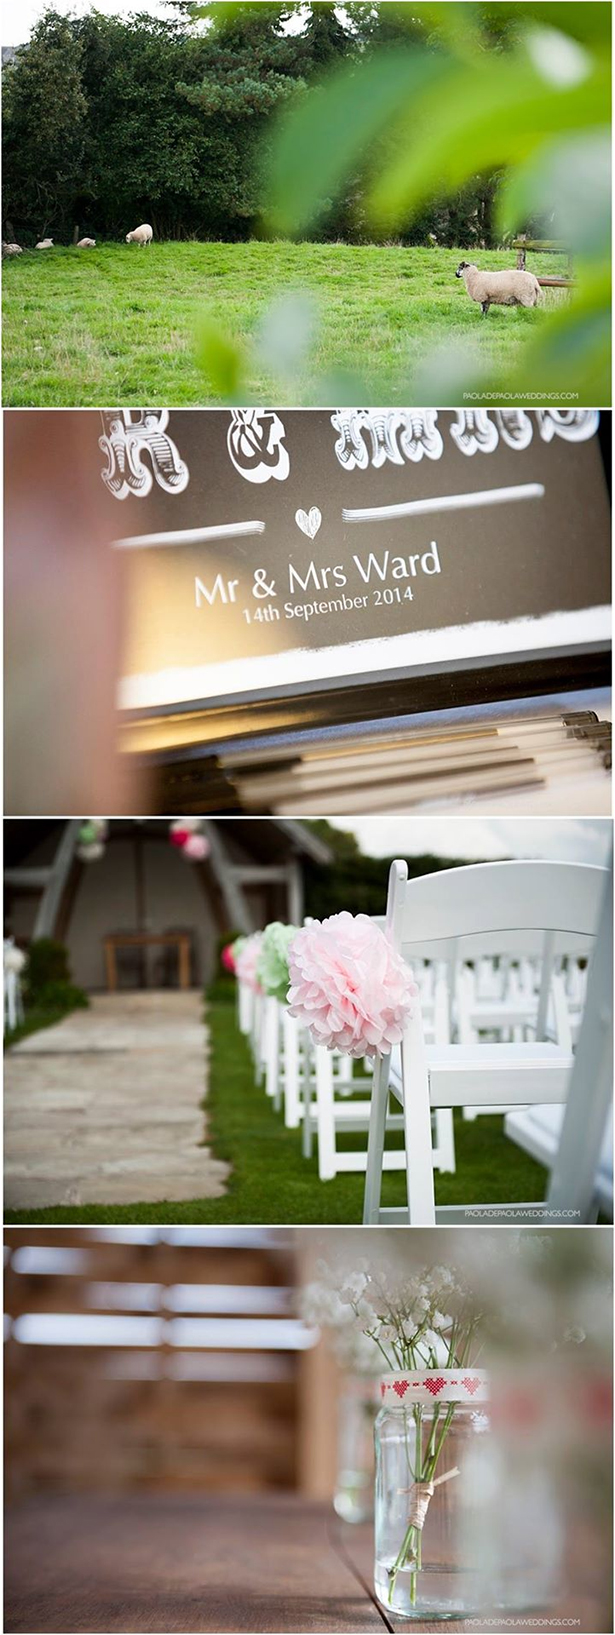 Out dor wedding ceremony | Lauren and David's real wedding | Confetti.co.uk